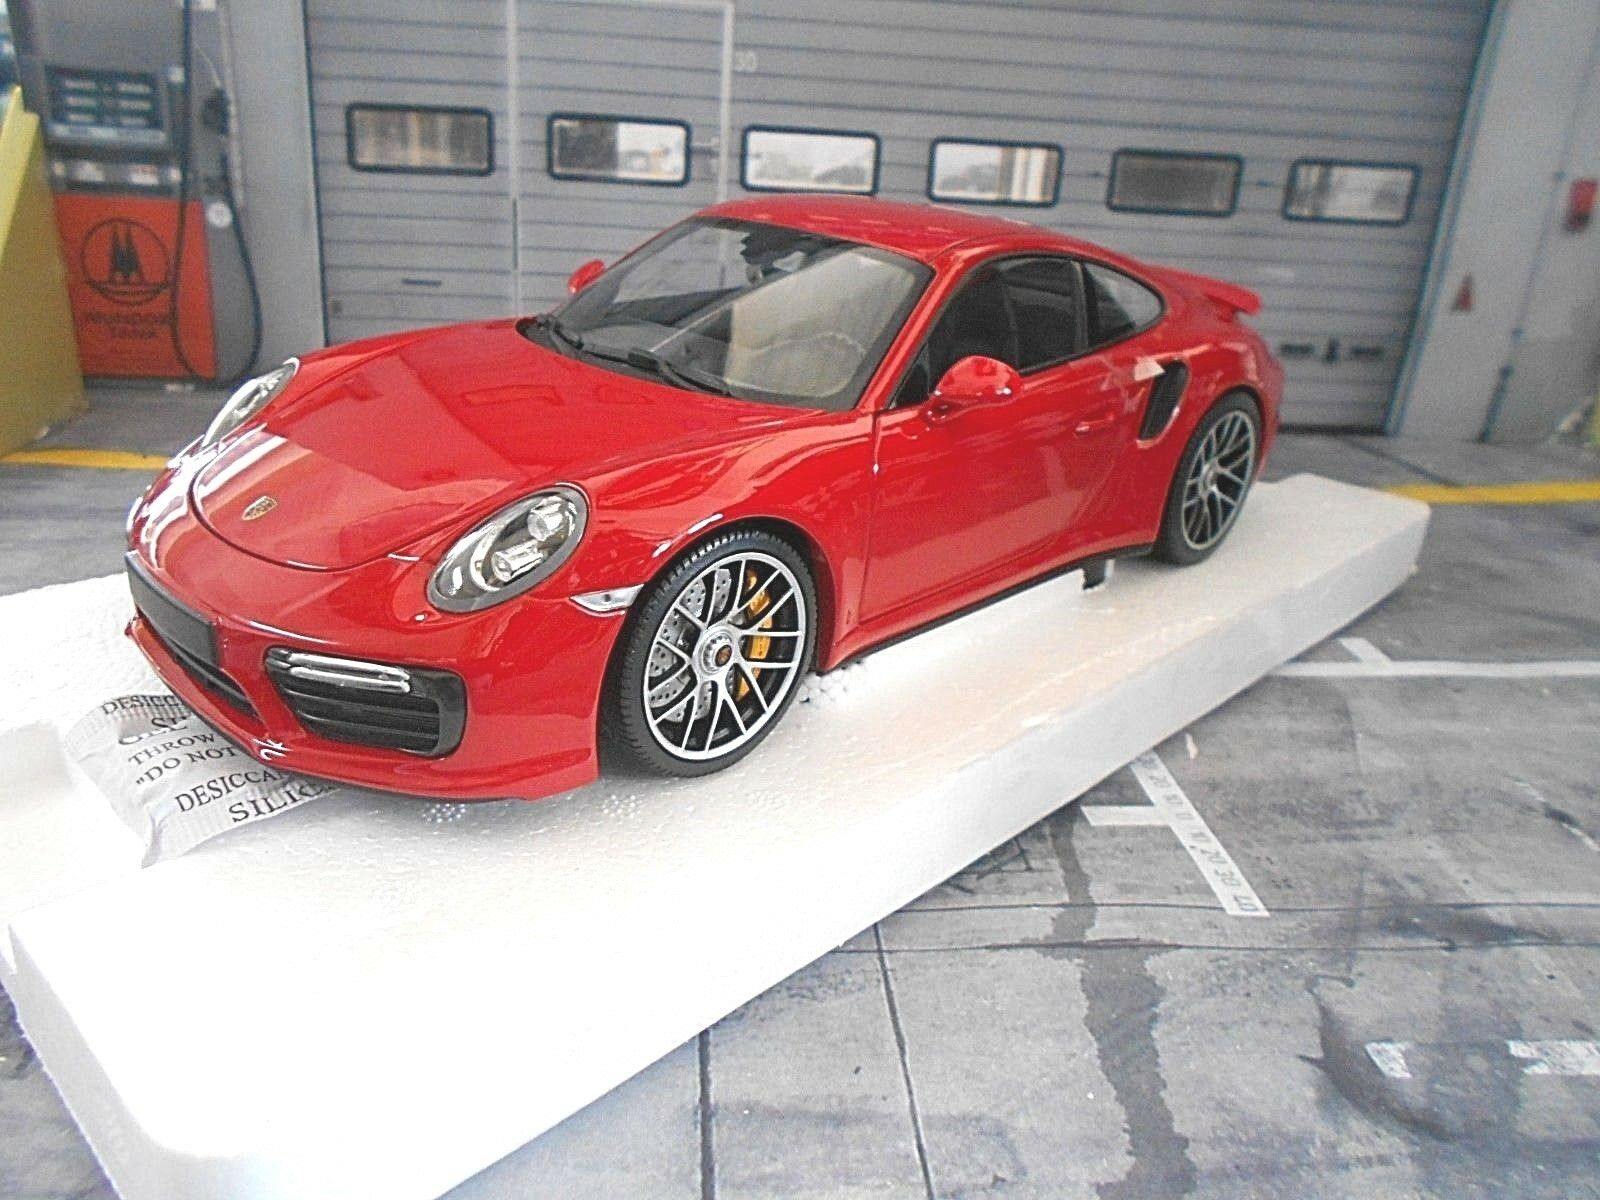 Porsche 911 991 Turbo S Coupe 2016 rouge ROUGE NEW NEUF miniature MINICHAMPS 1 18